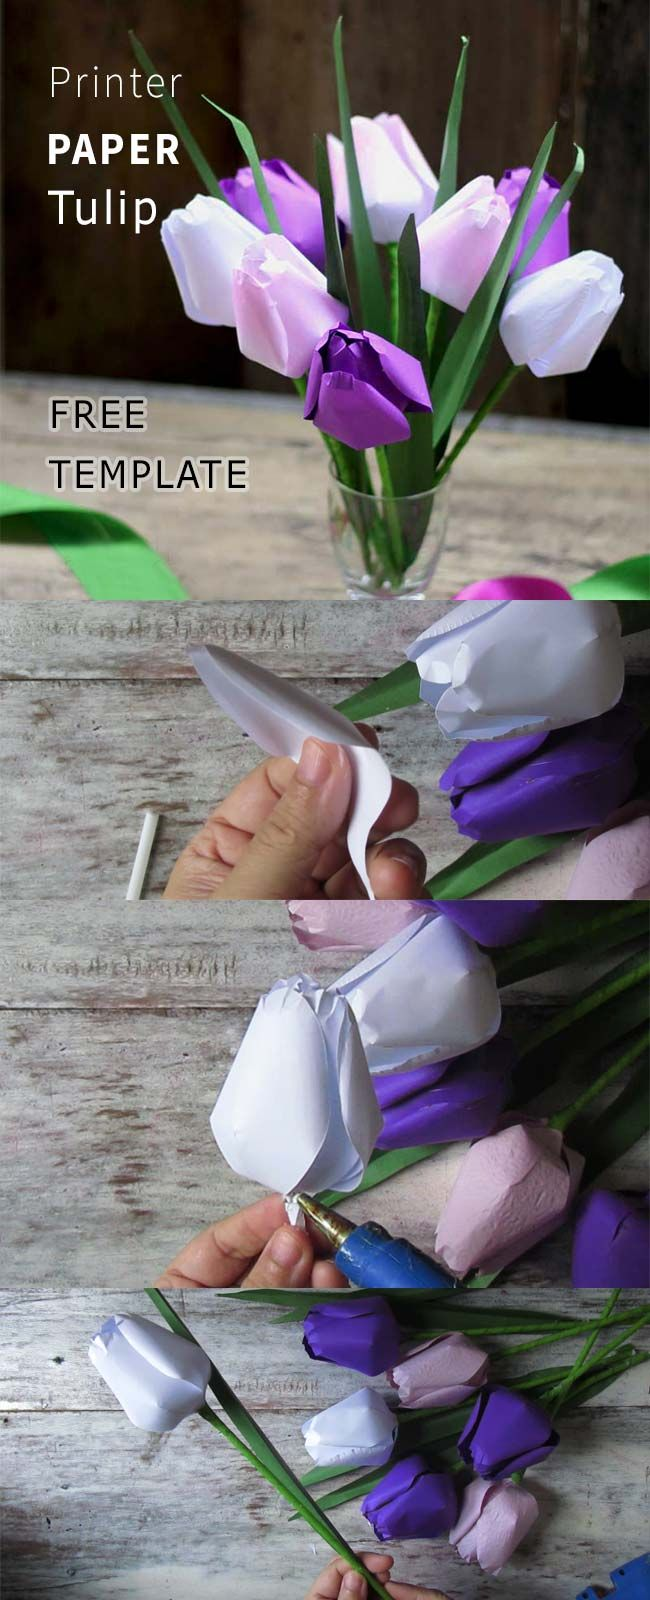 How to make paper tulip from printer paper free template printer free template and tutorial to make paper tulip from printer paper and straw paperflowers mightylinksfo